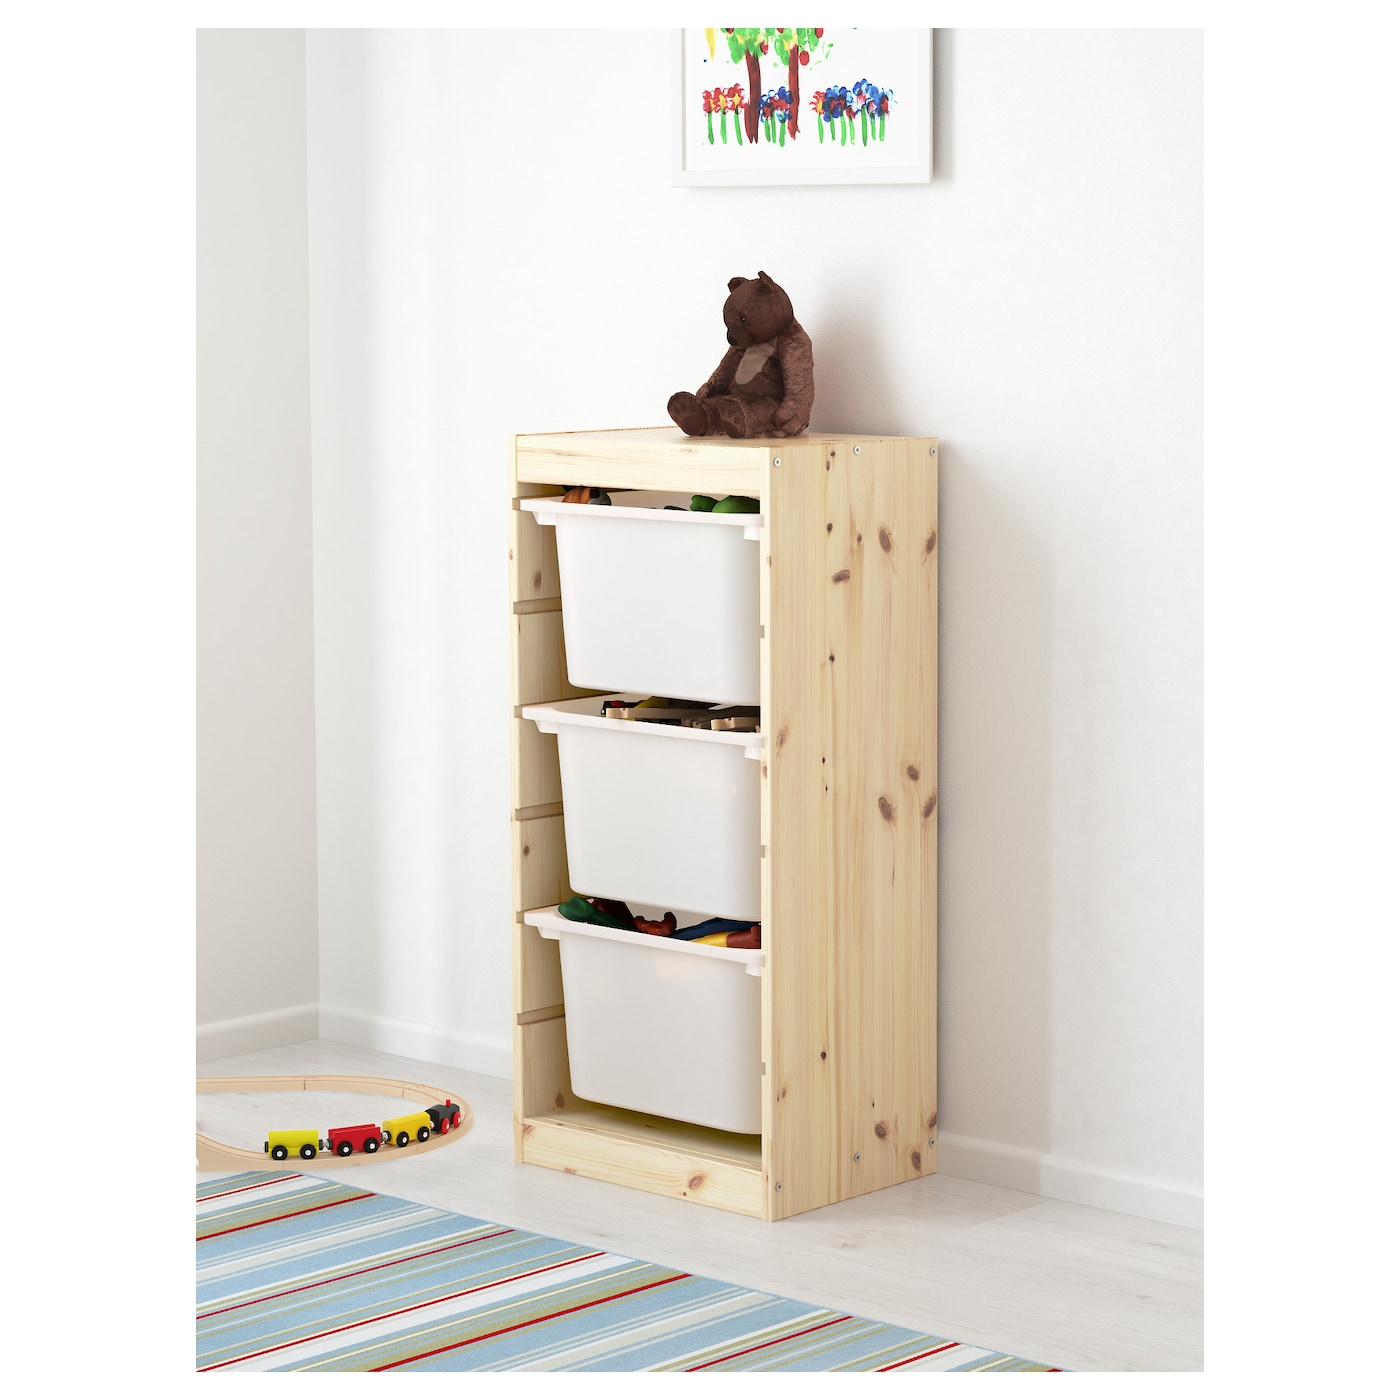 trofast storage combination with boxes light white stained pine white 44 x 30 x 91 cm ikea. Black Bedroom Furniture Sets. Home Design Ideas